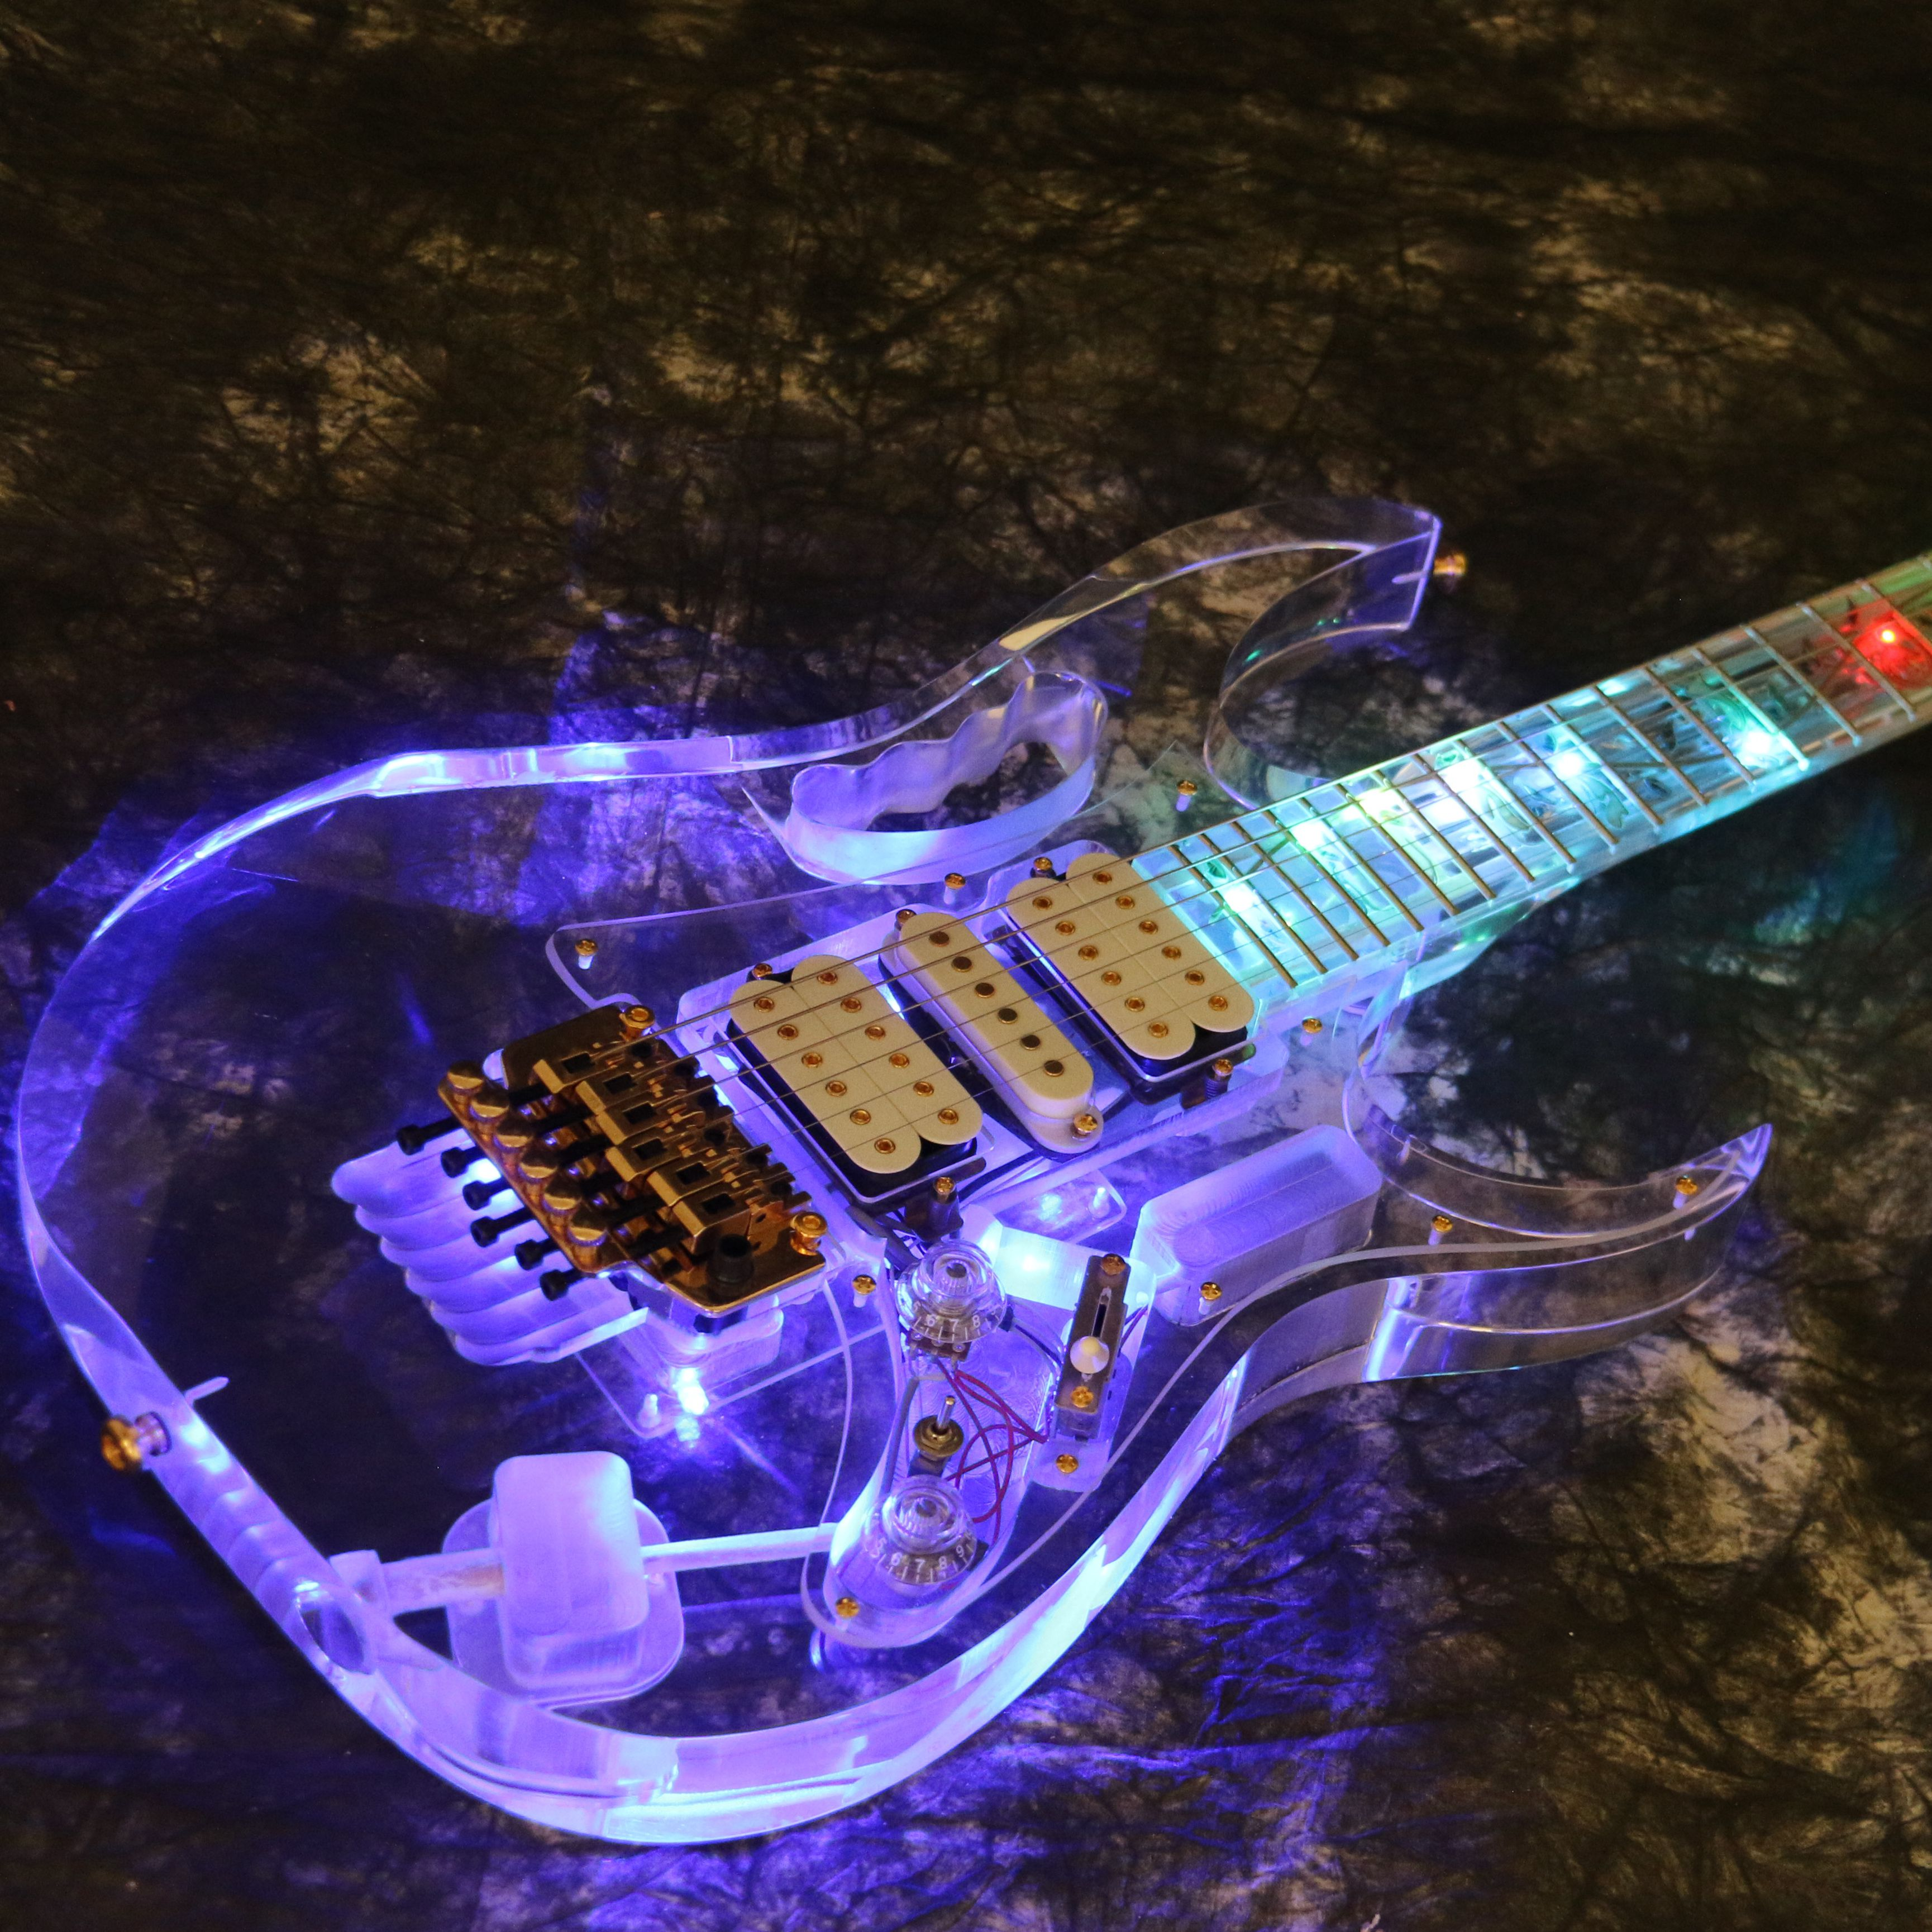 T-ED12 LED Light Electric Guitar 7VE Style Full Acrylic Colorful Flash Led Light Crystal Guitar